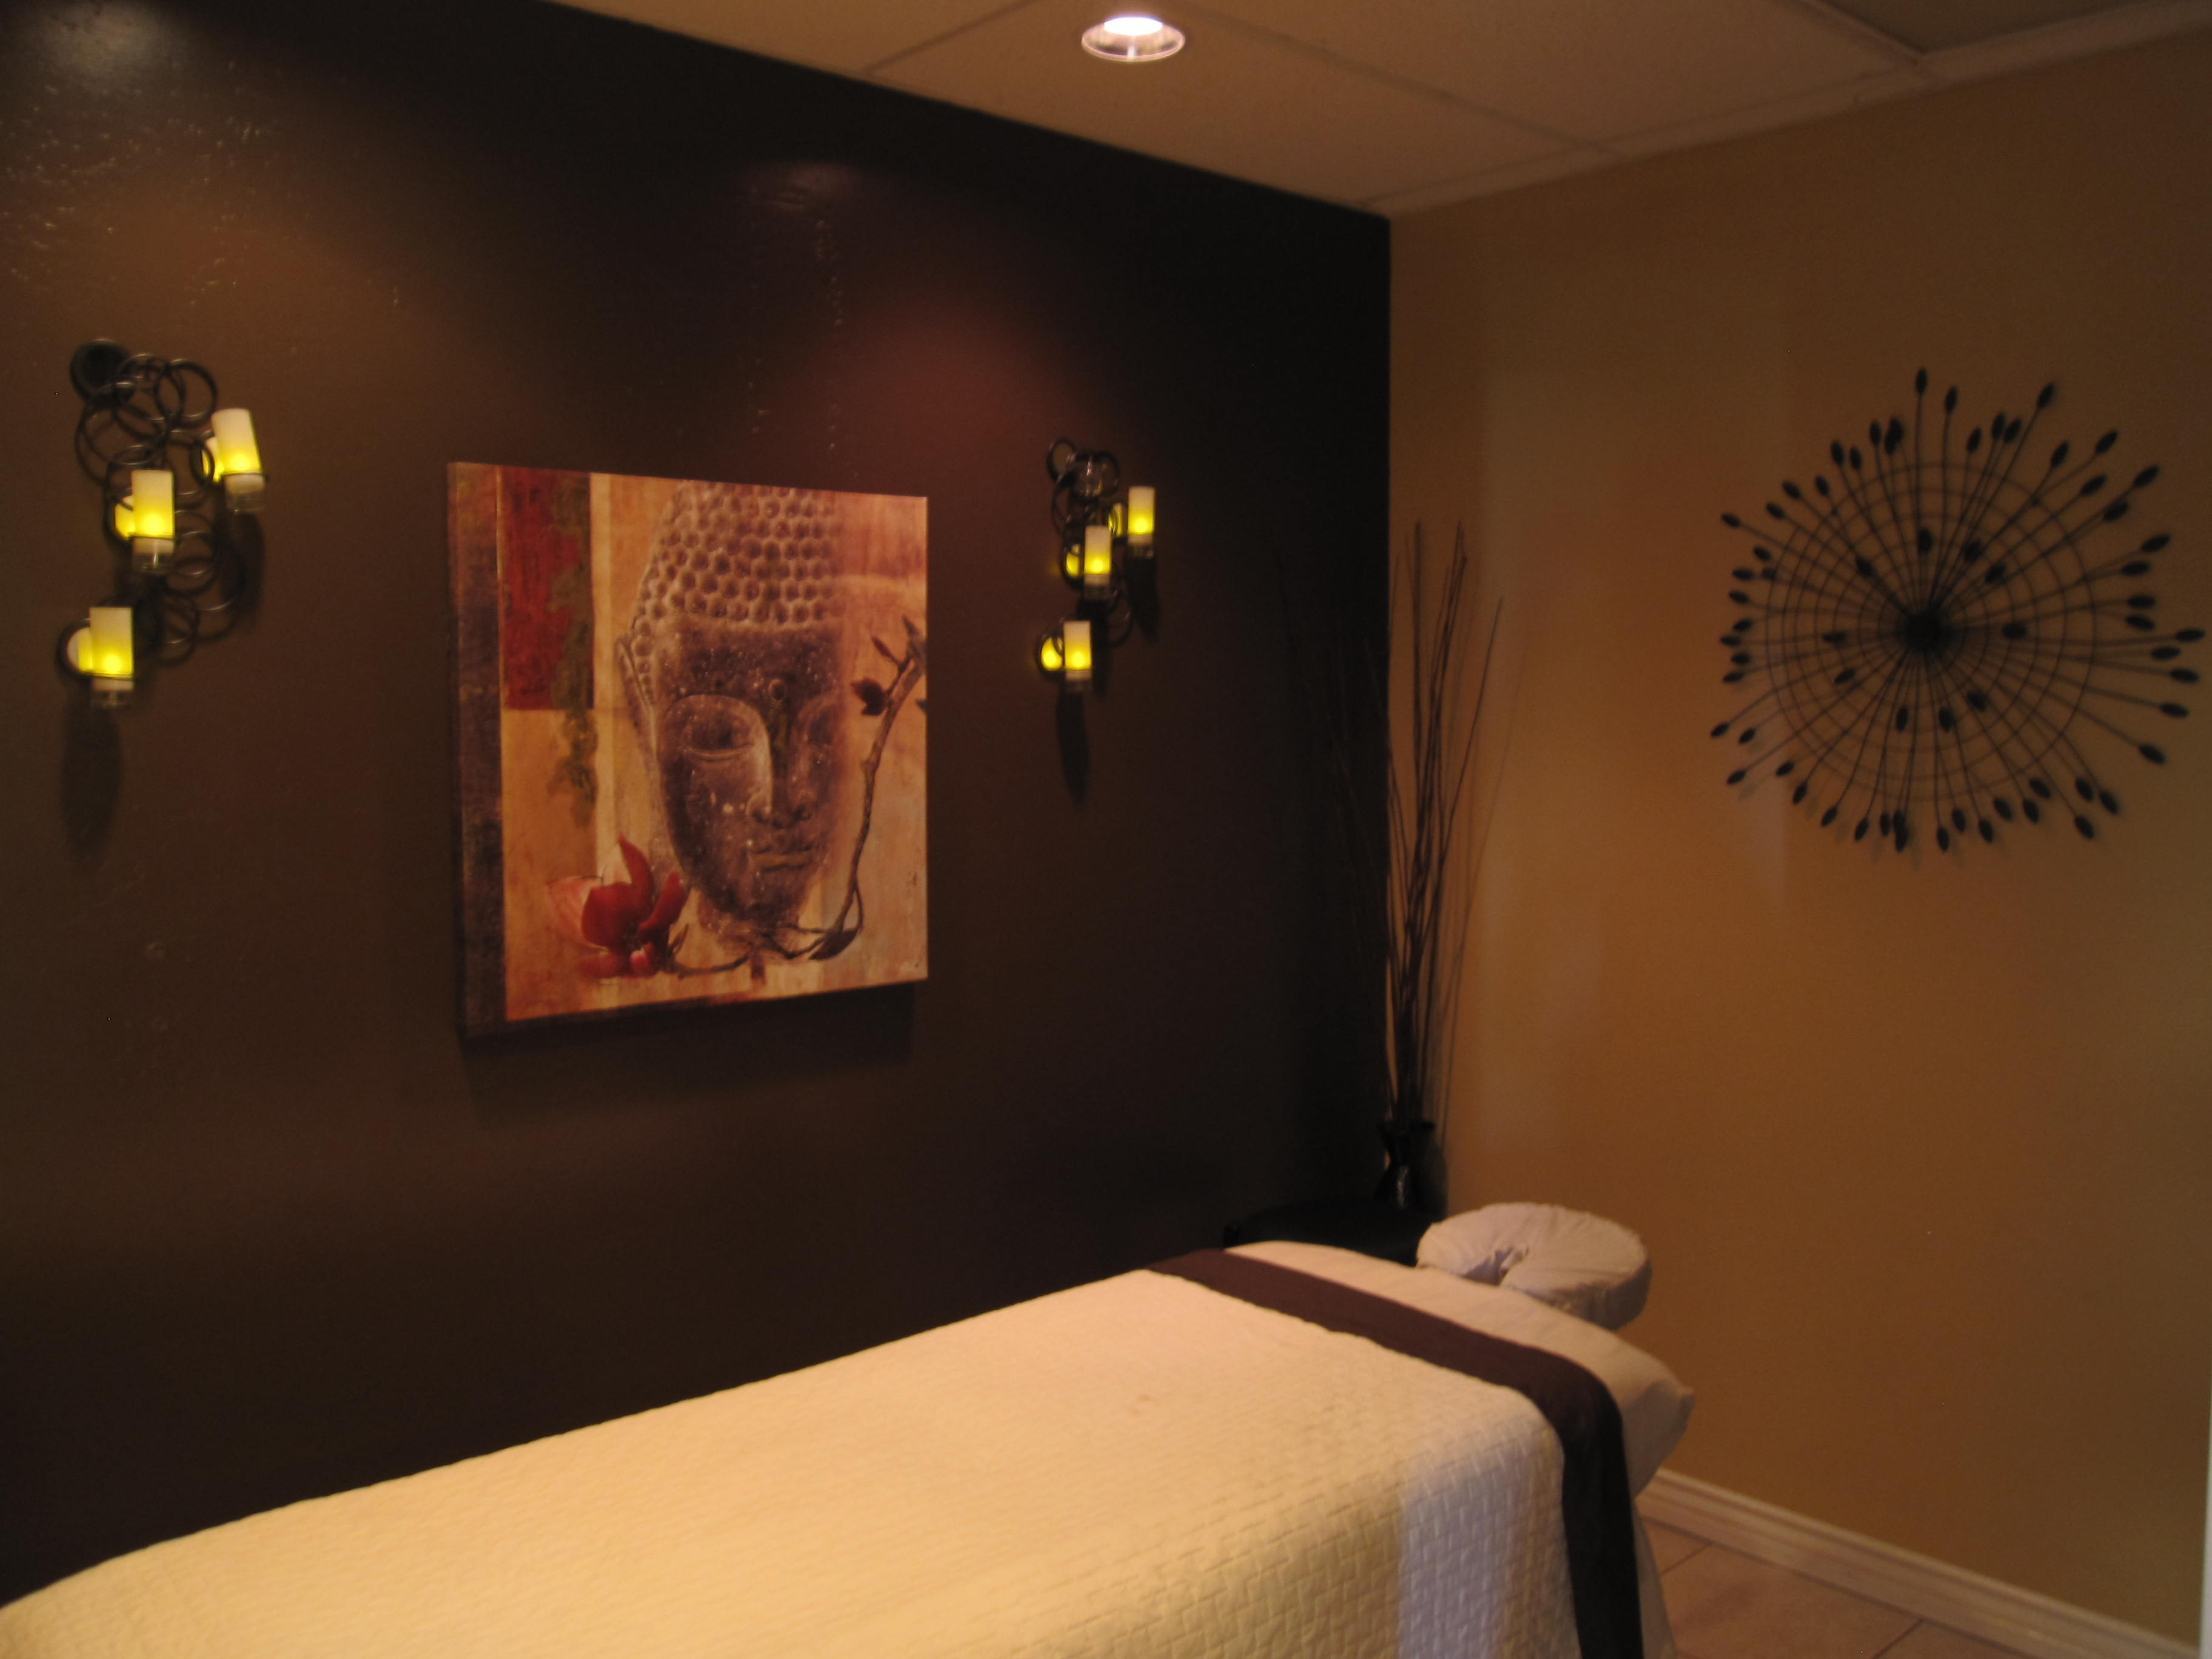 Estee Massage Services 13300 Old Blanco Rd San Antonio